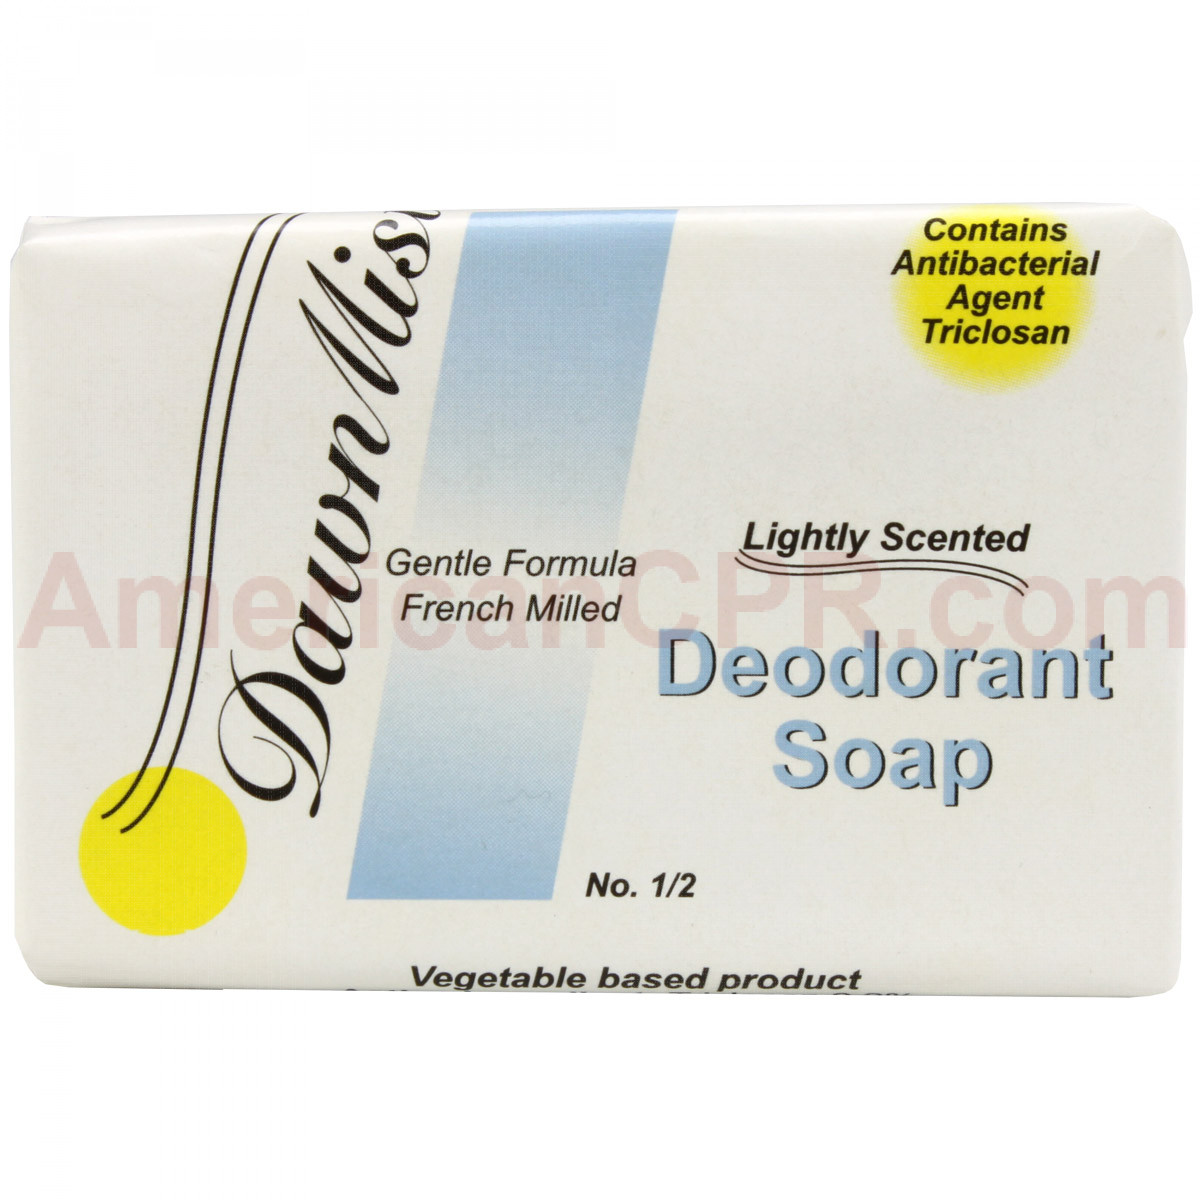 Anti-Bacterial Bar Soap .5 oz. - Value Brand